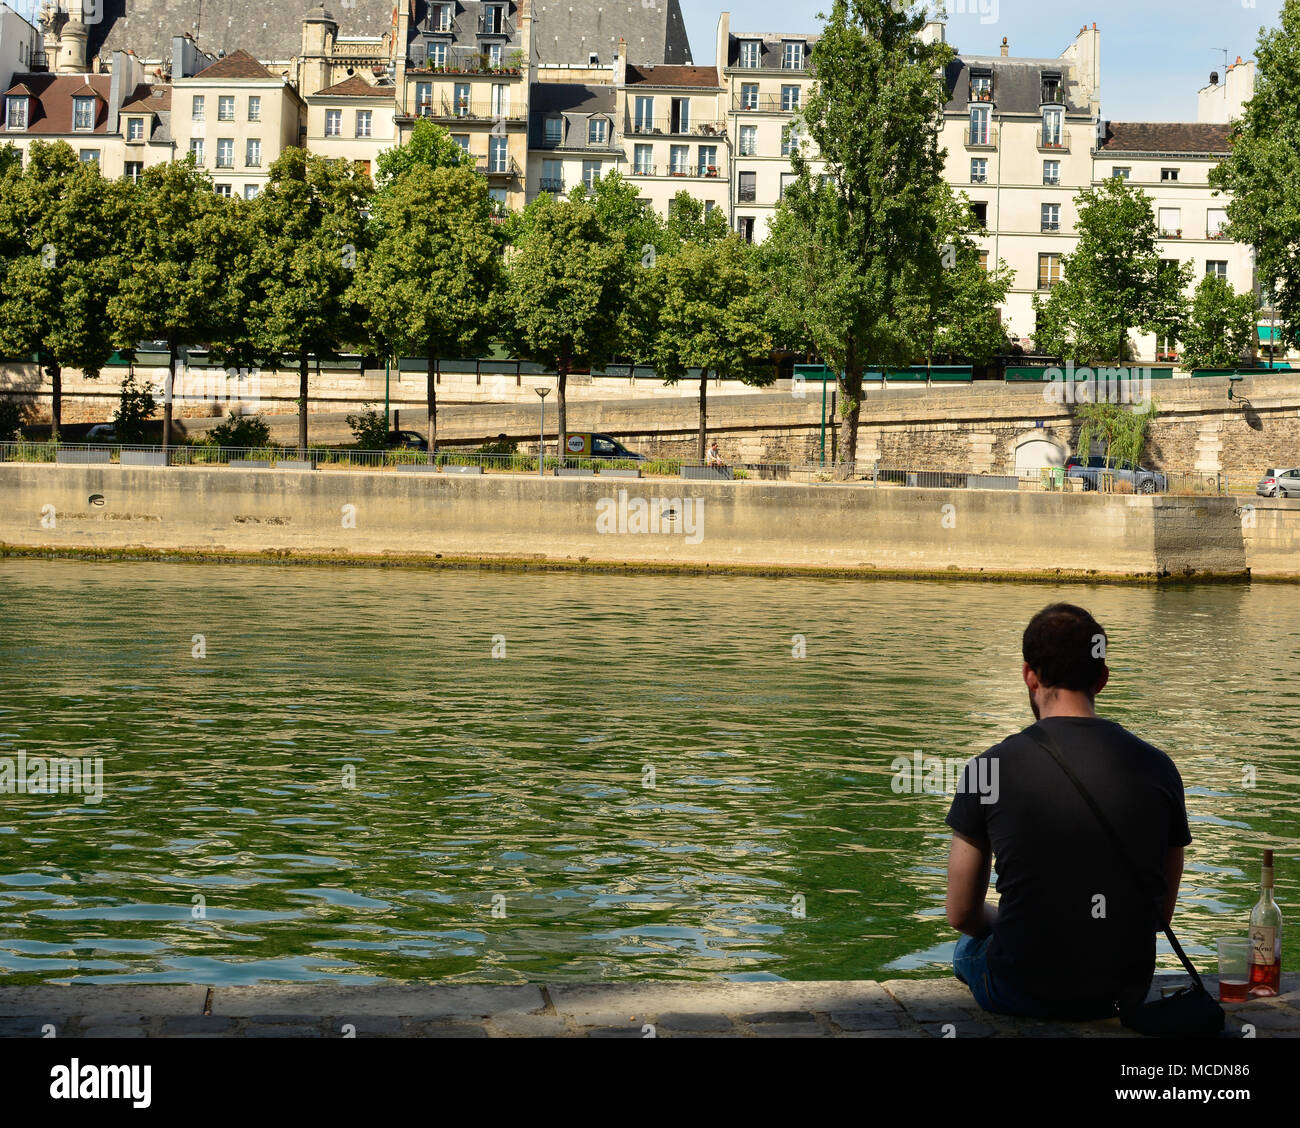 A man sits alone with a bottle of wine, relaxing on the banks of the river Seine in Paris - Stock Image